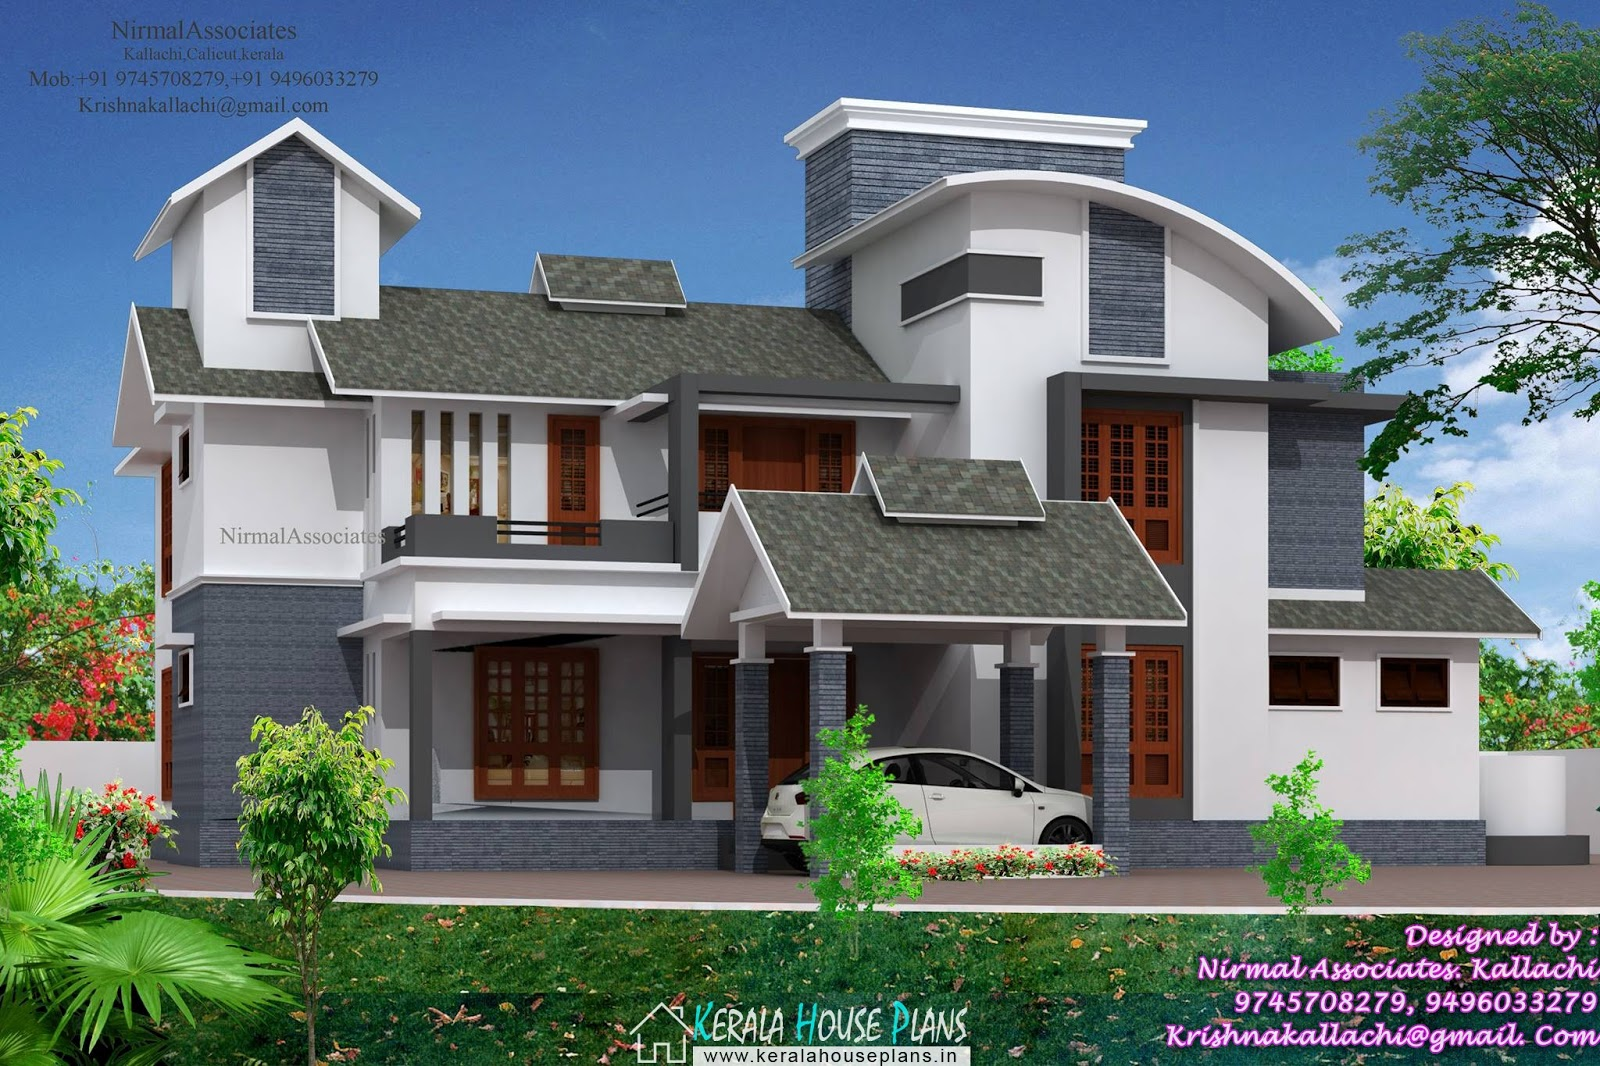 Kerala House Plans Designs, Floor Plans and Elevation